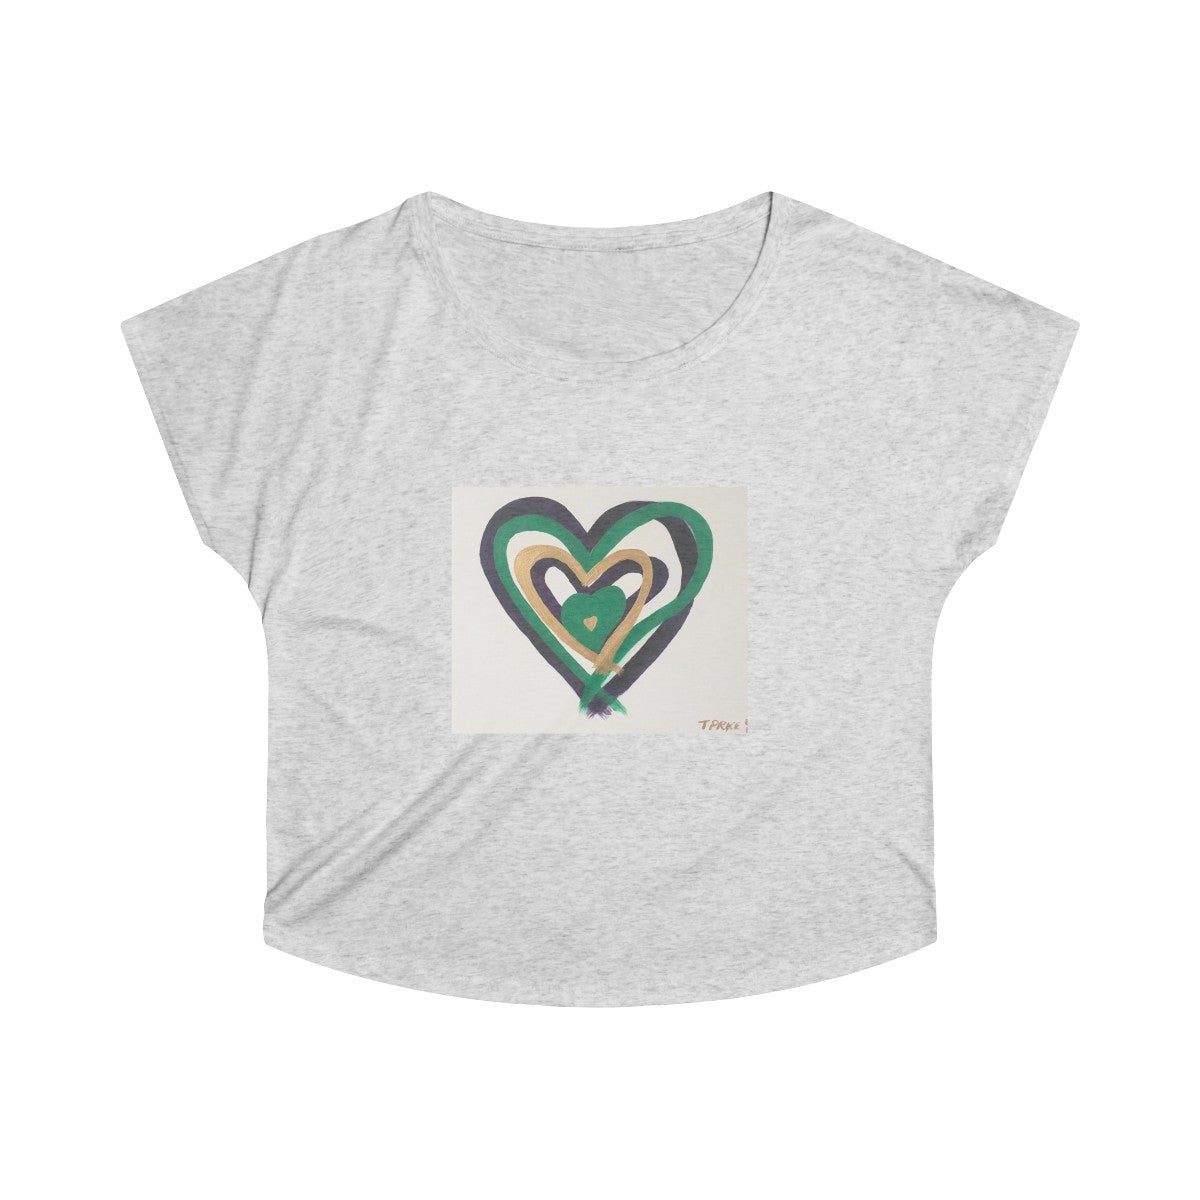 Heart Women's Tri-Blend Dolman T-shirt in Heather White - Tara Price Art